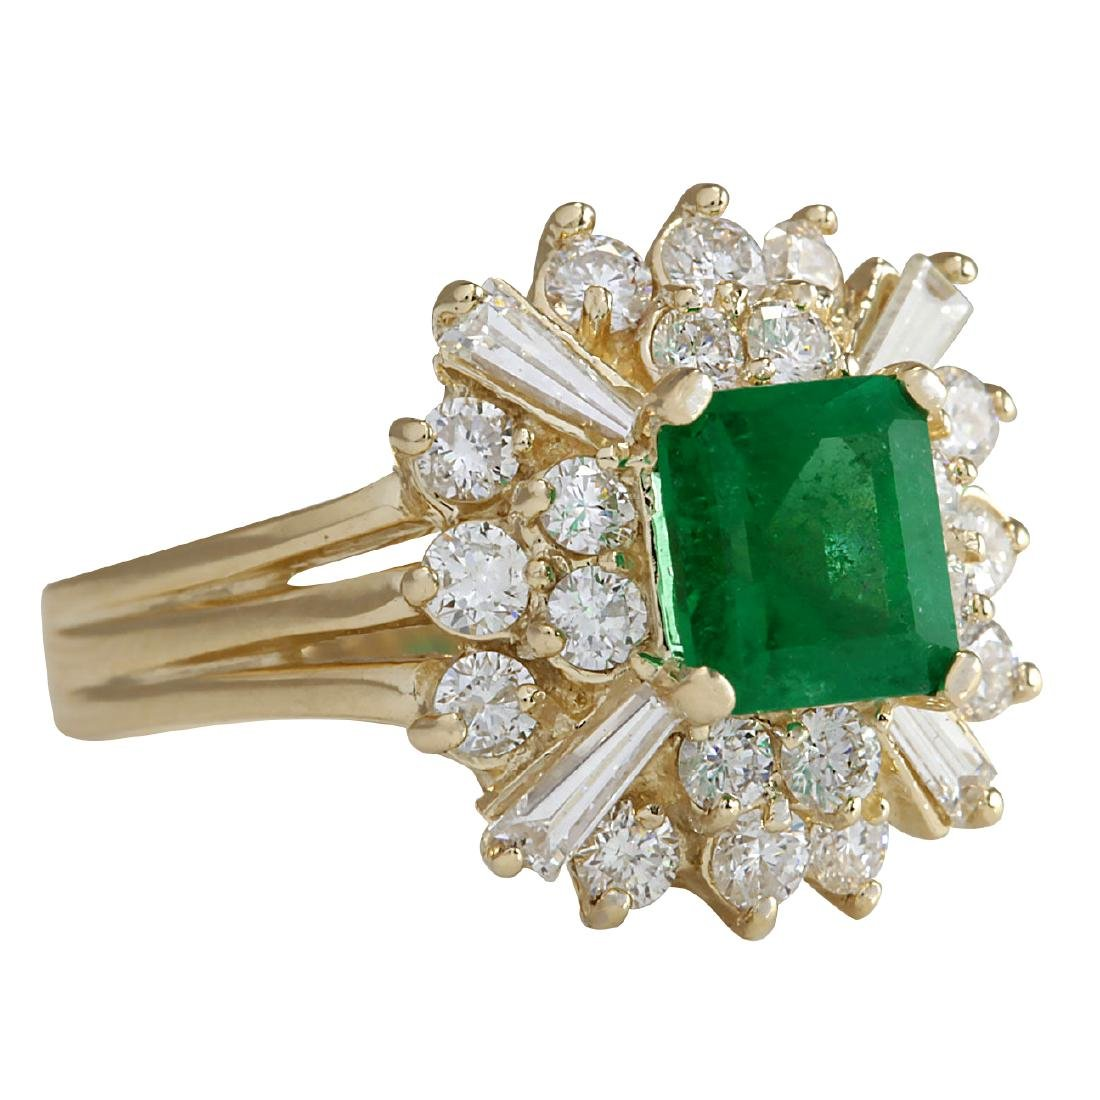 2.31CTW Natural Emerald And Diamond Ring 18K Solid - 2